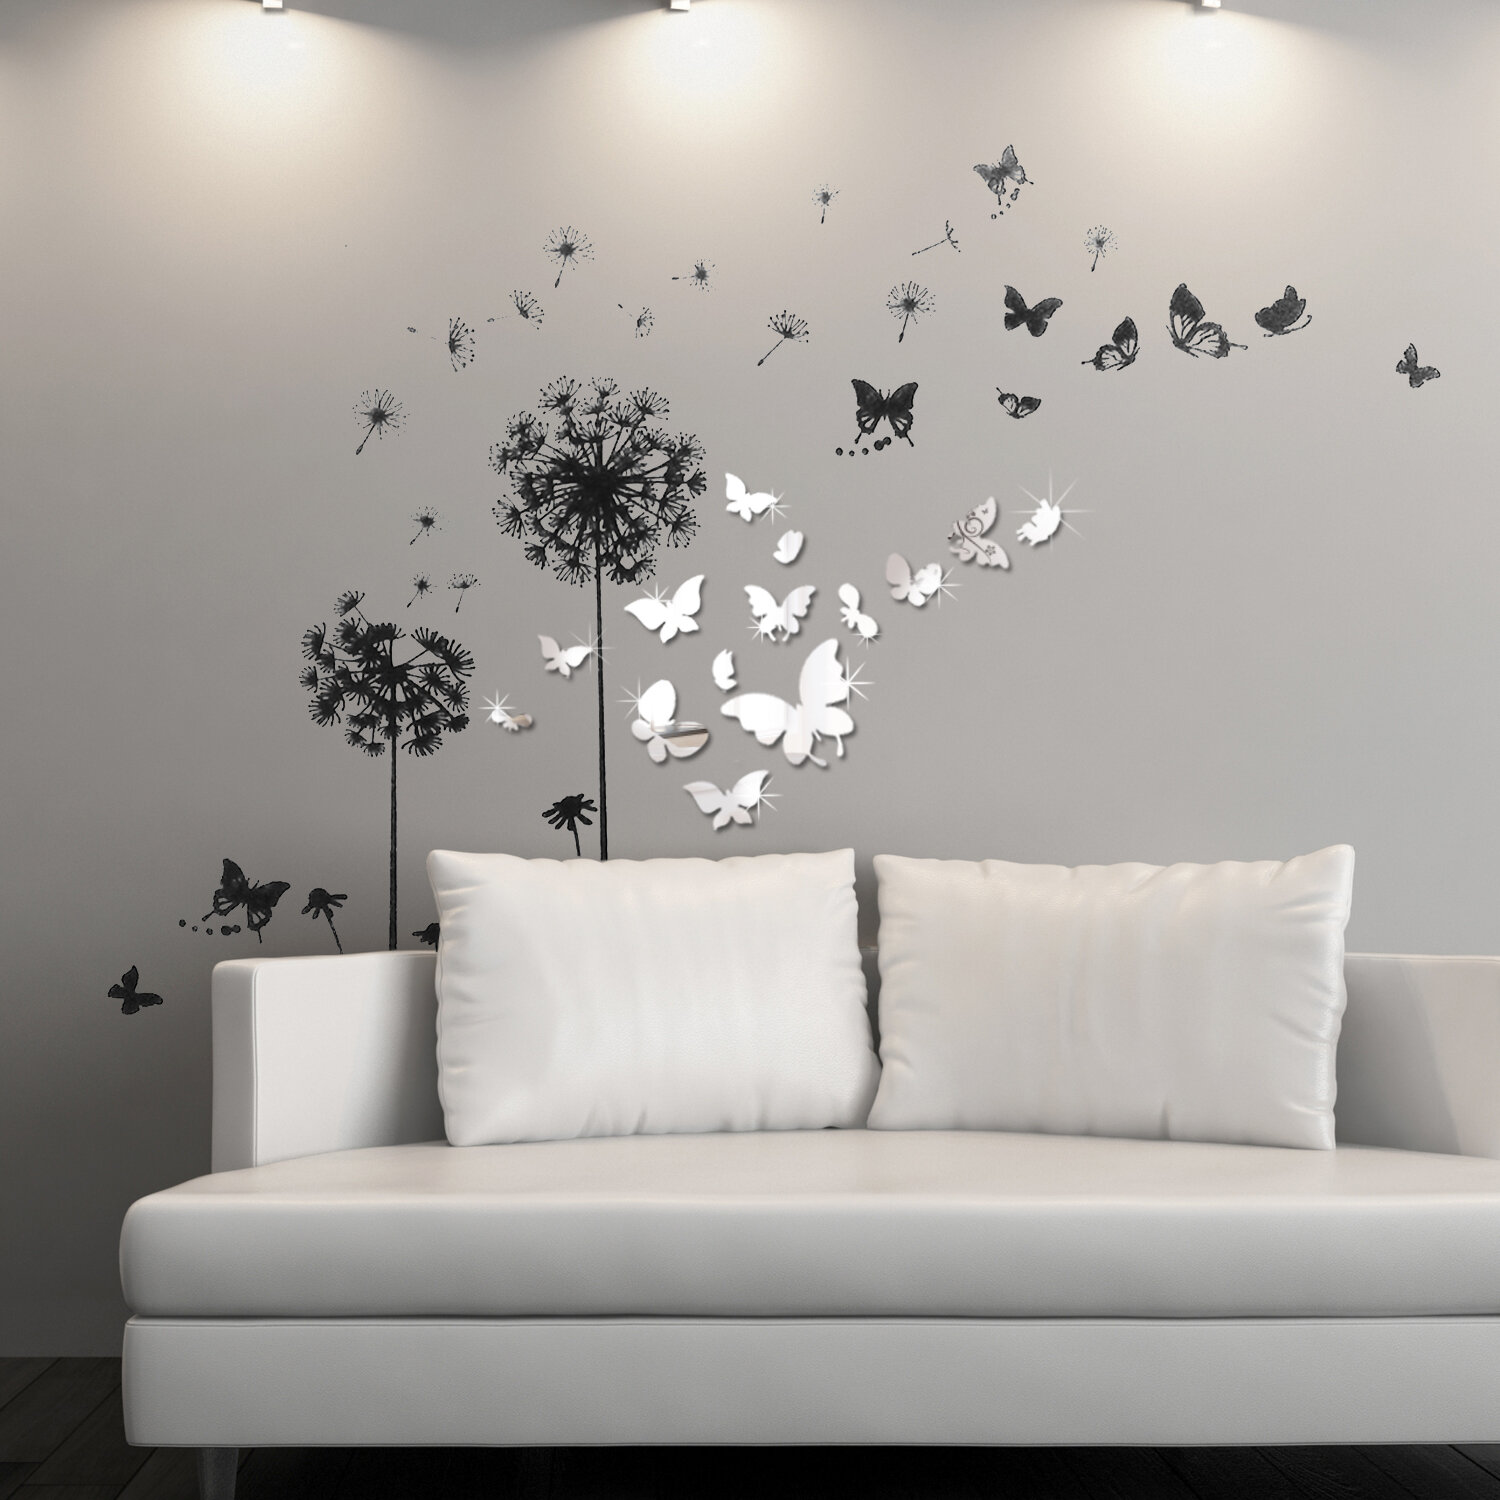 Ebern Designs Viens Mirror Butterfly Transparent Dandelion Wall Decal U0026  Reviews | Wayfair